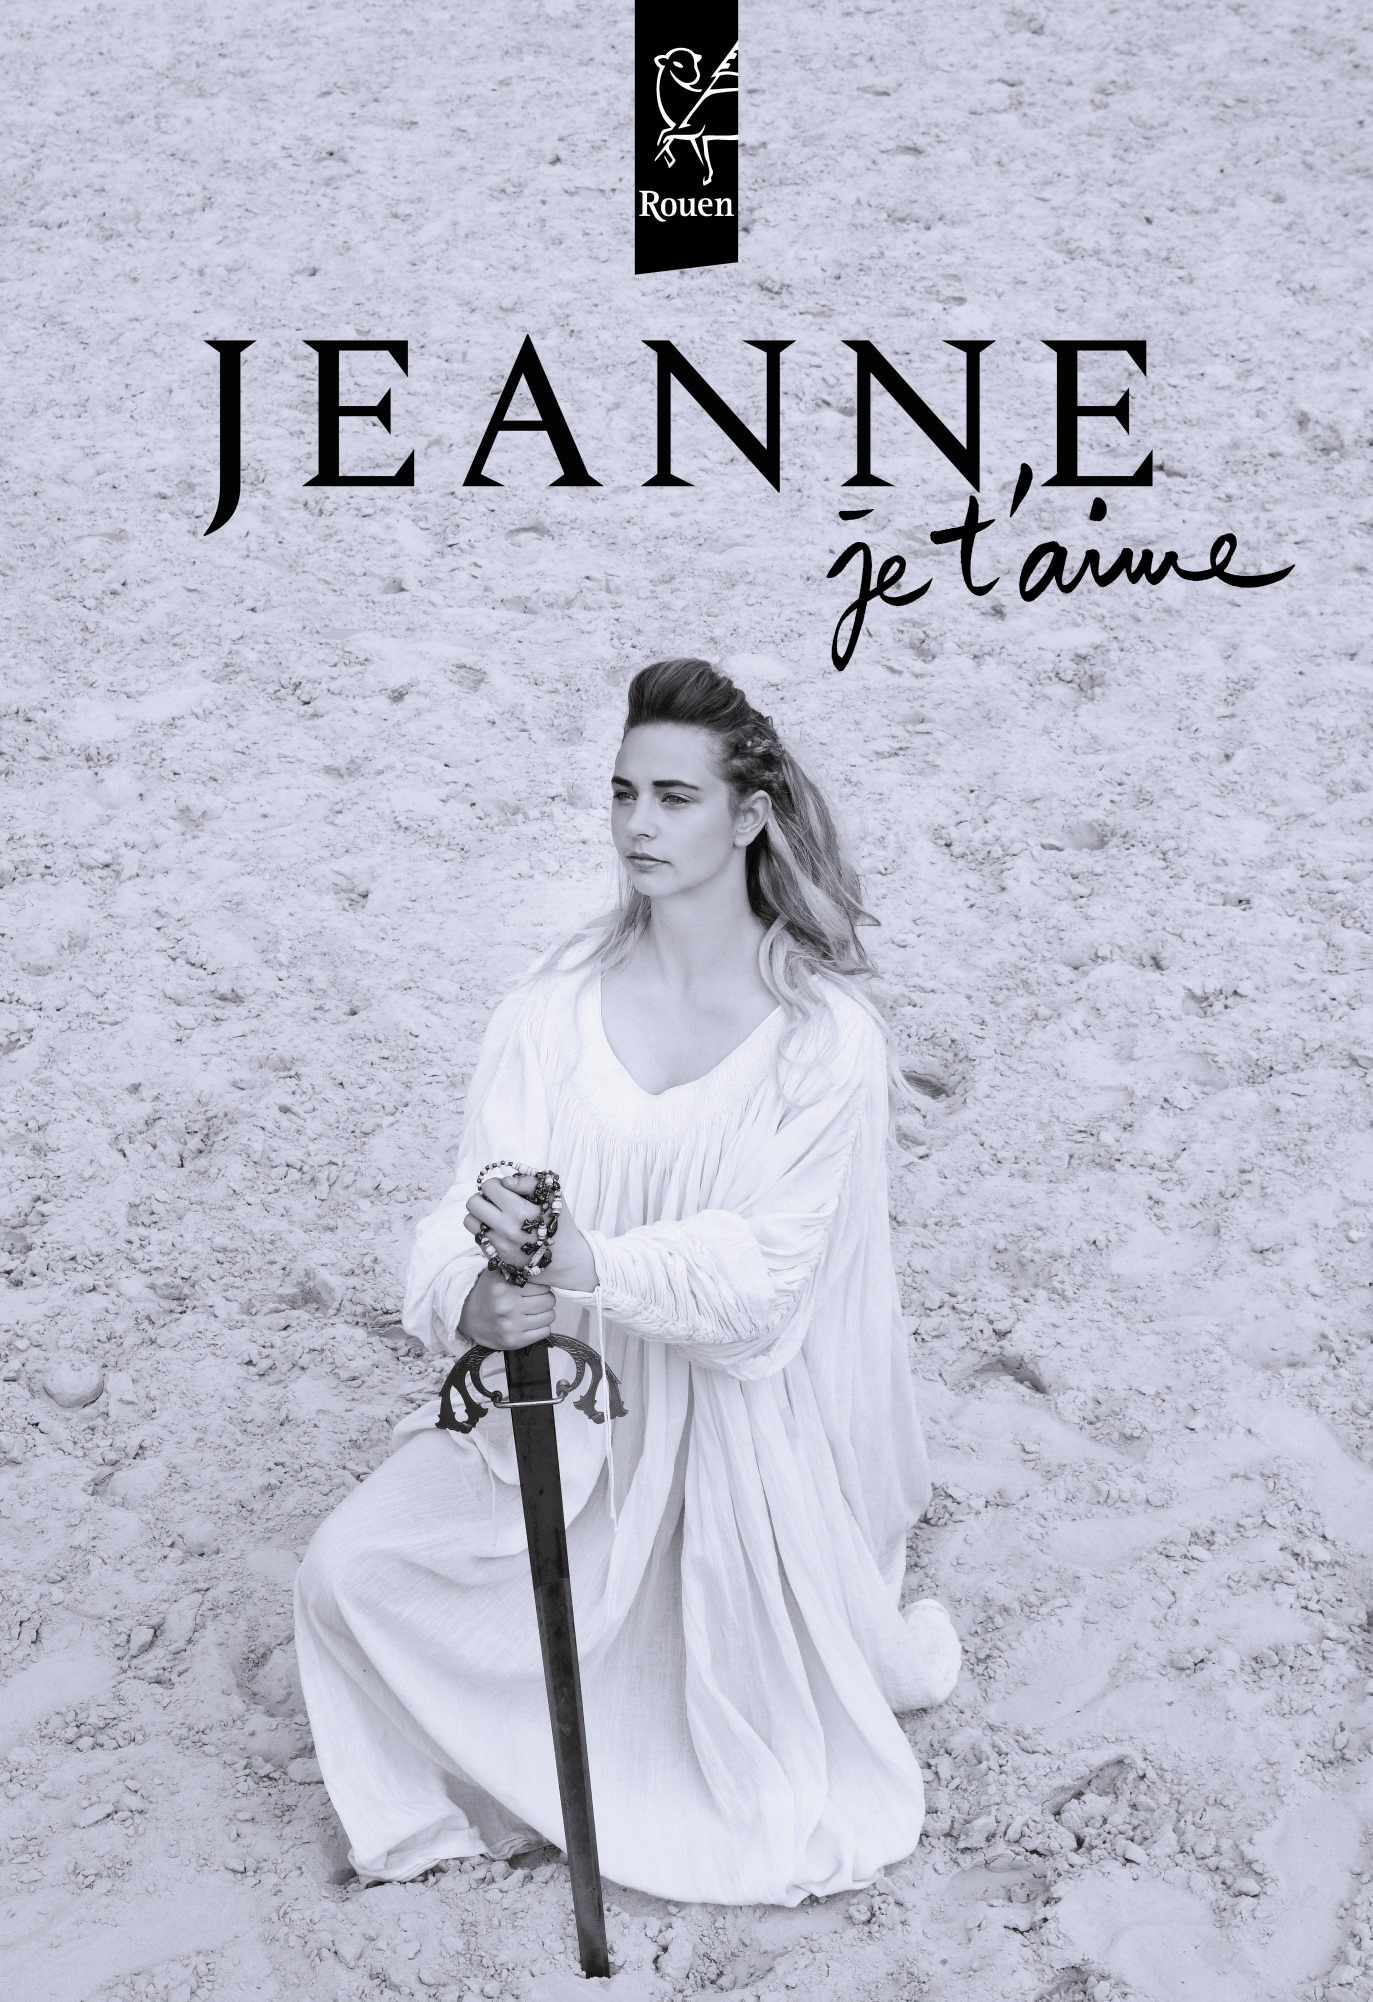 Exposition ``Jeanne, je t'aime``